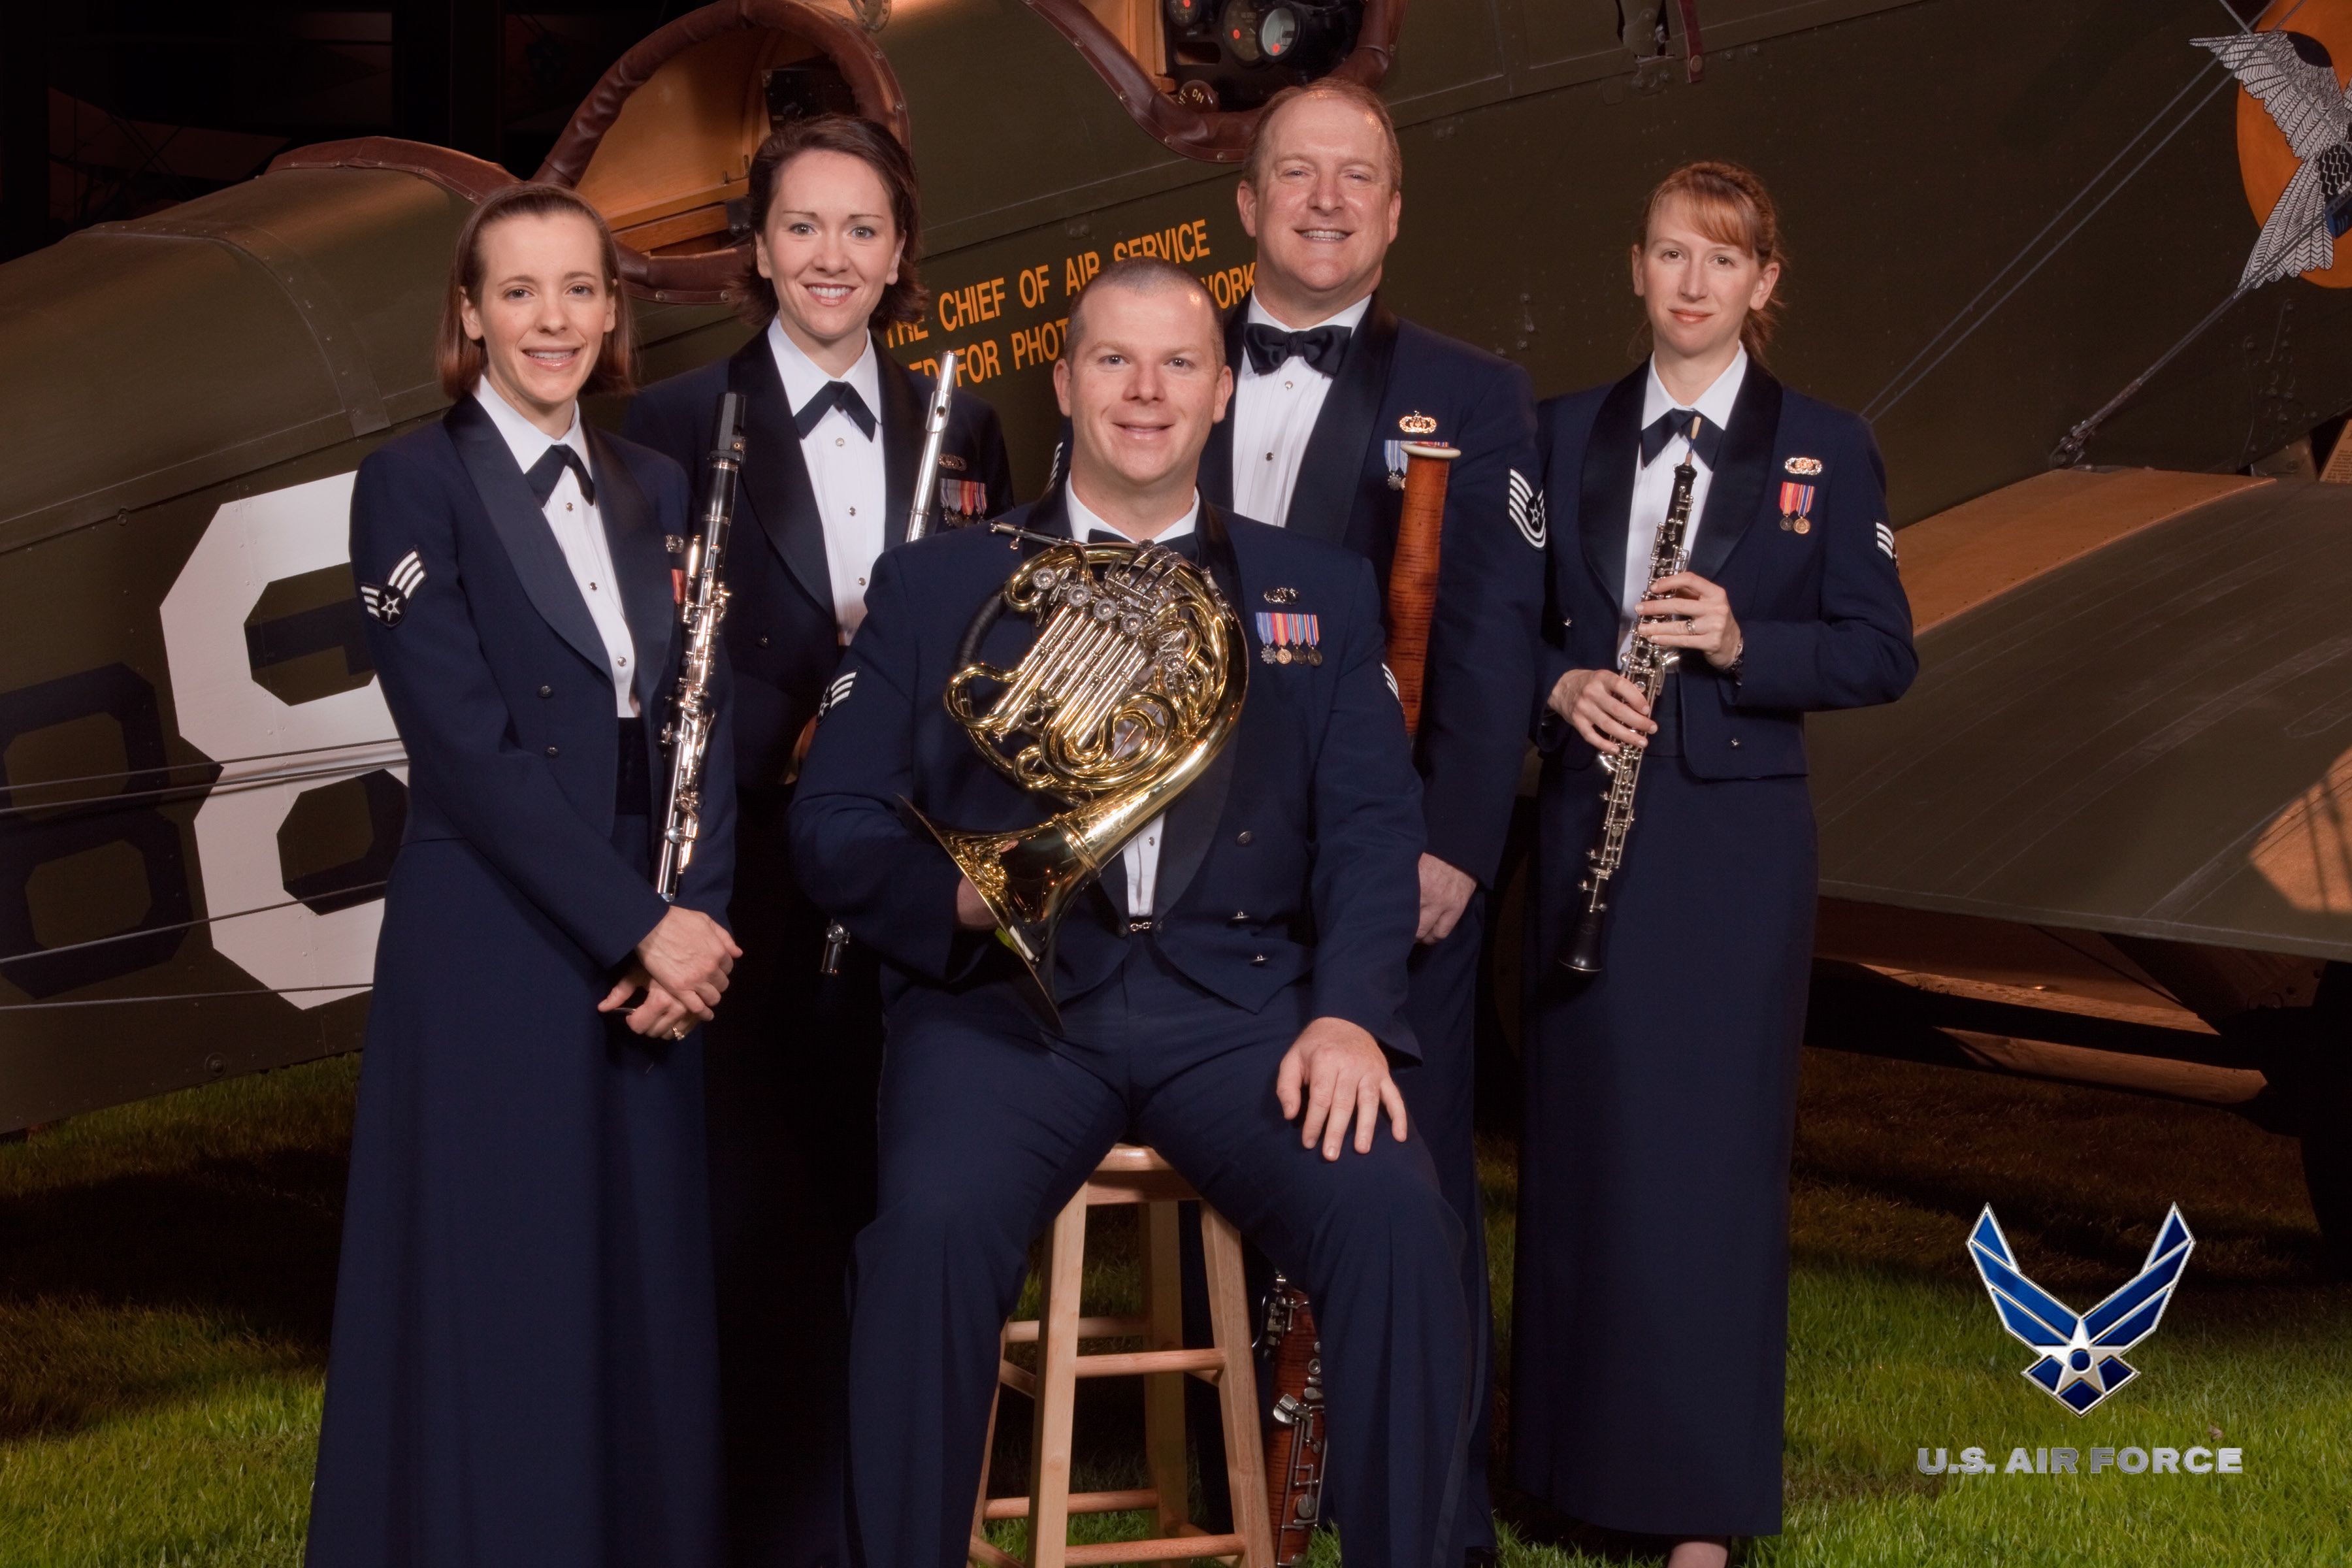 Huffman Prairie Winds: United States Air Force Band of Flight